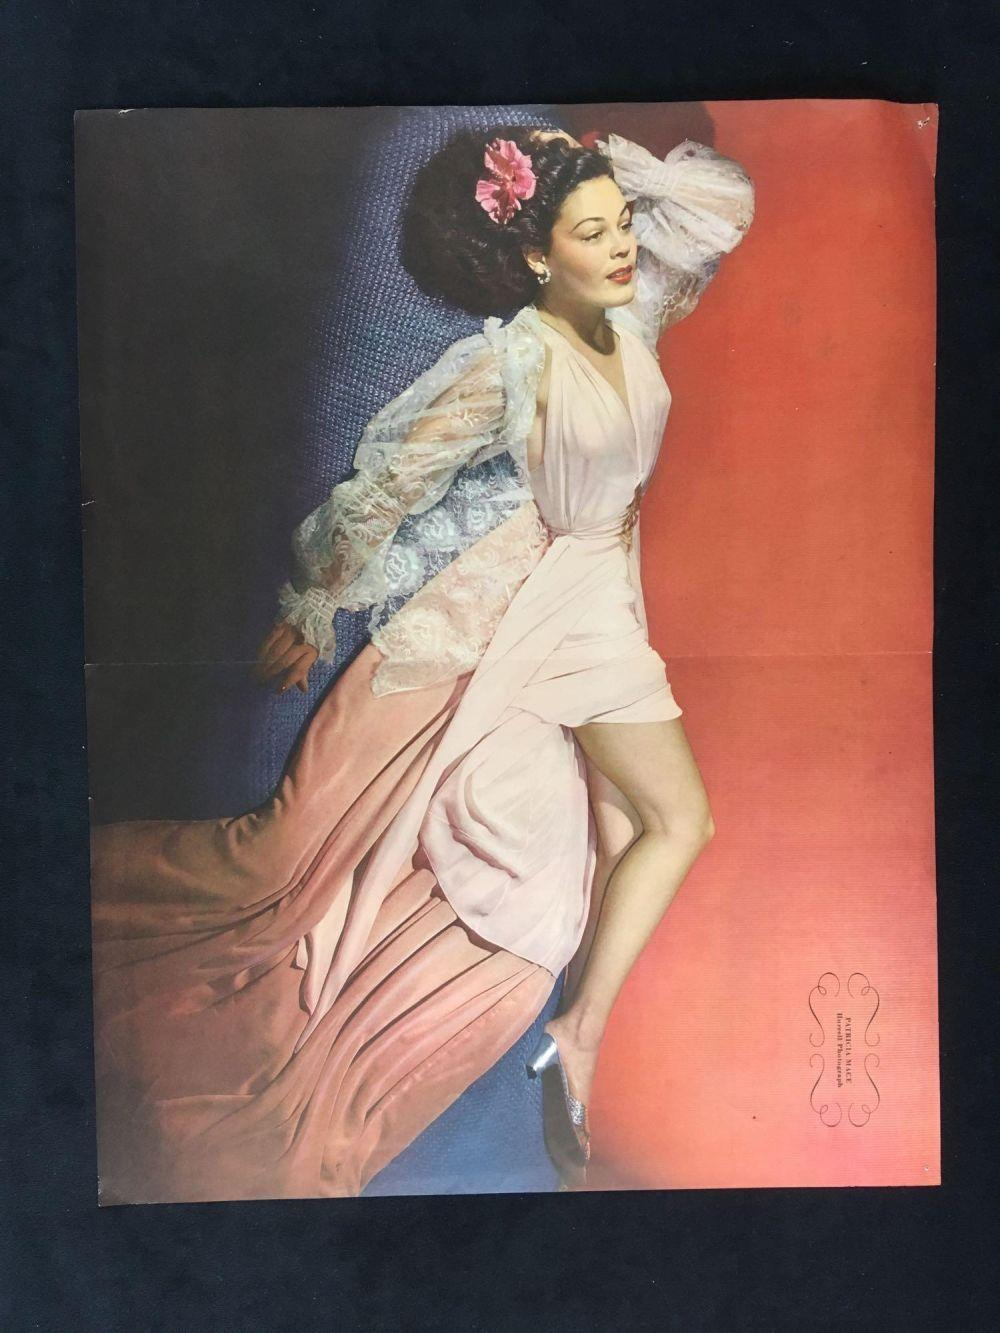 Lot 140: Vintage Esquire Magazine Pin-up Girl Here I Thought by George Petty, Circa 1940s